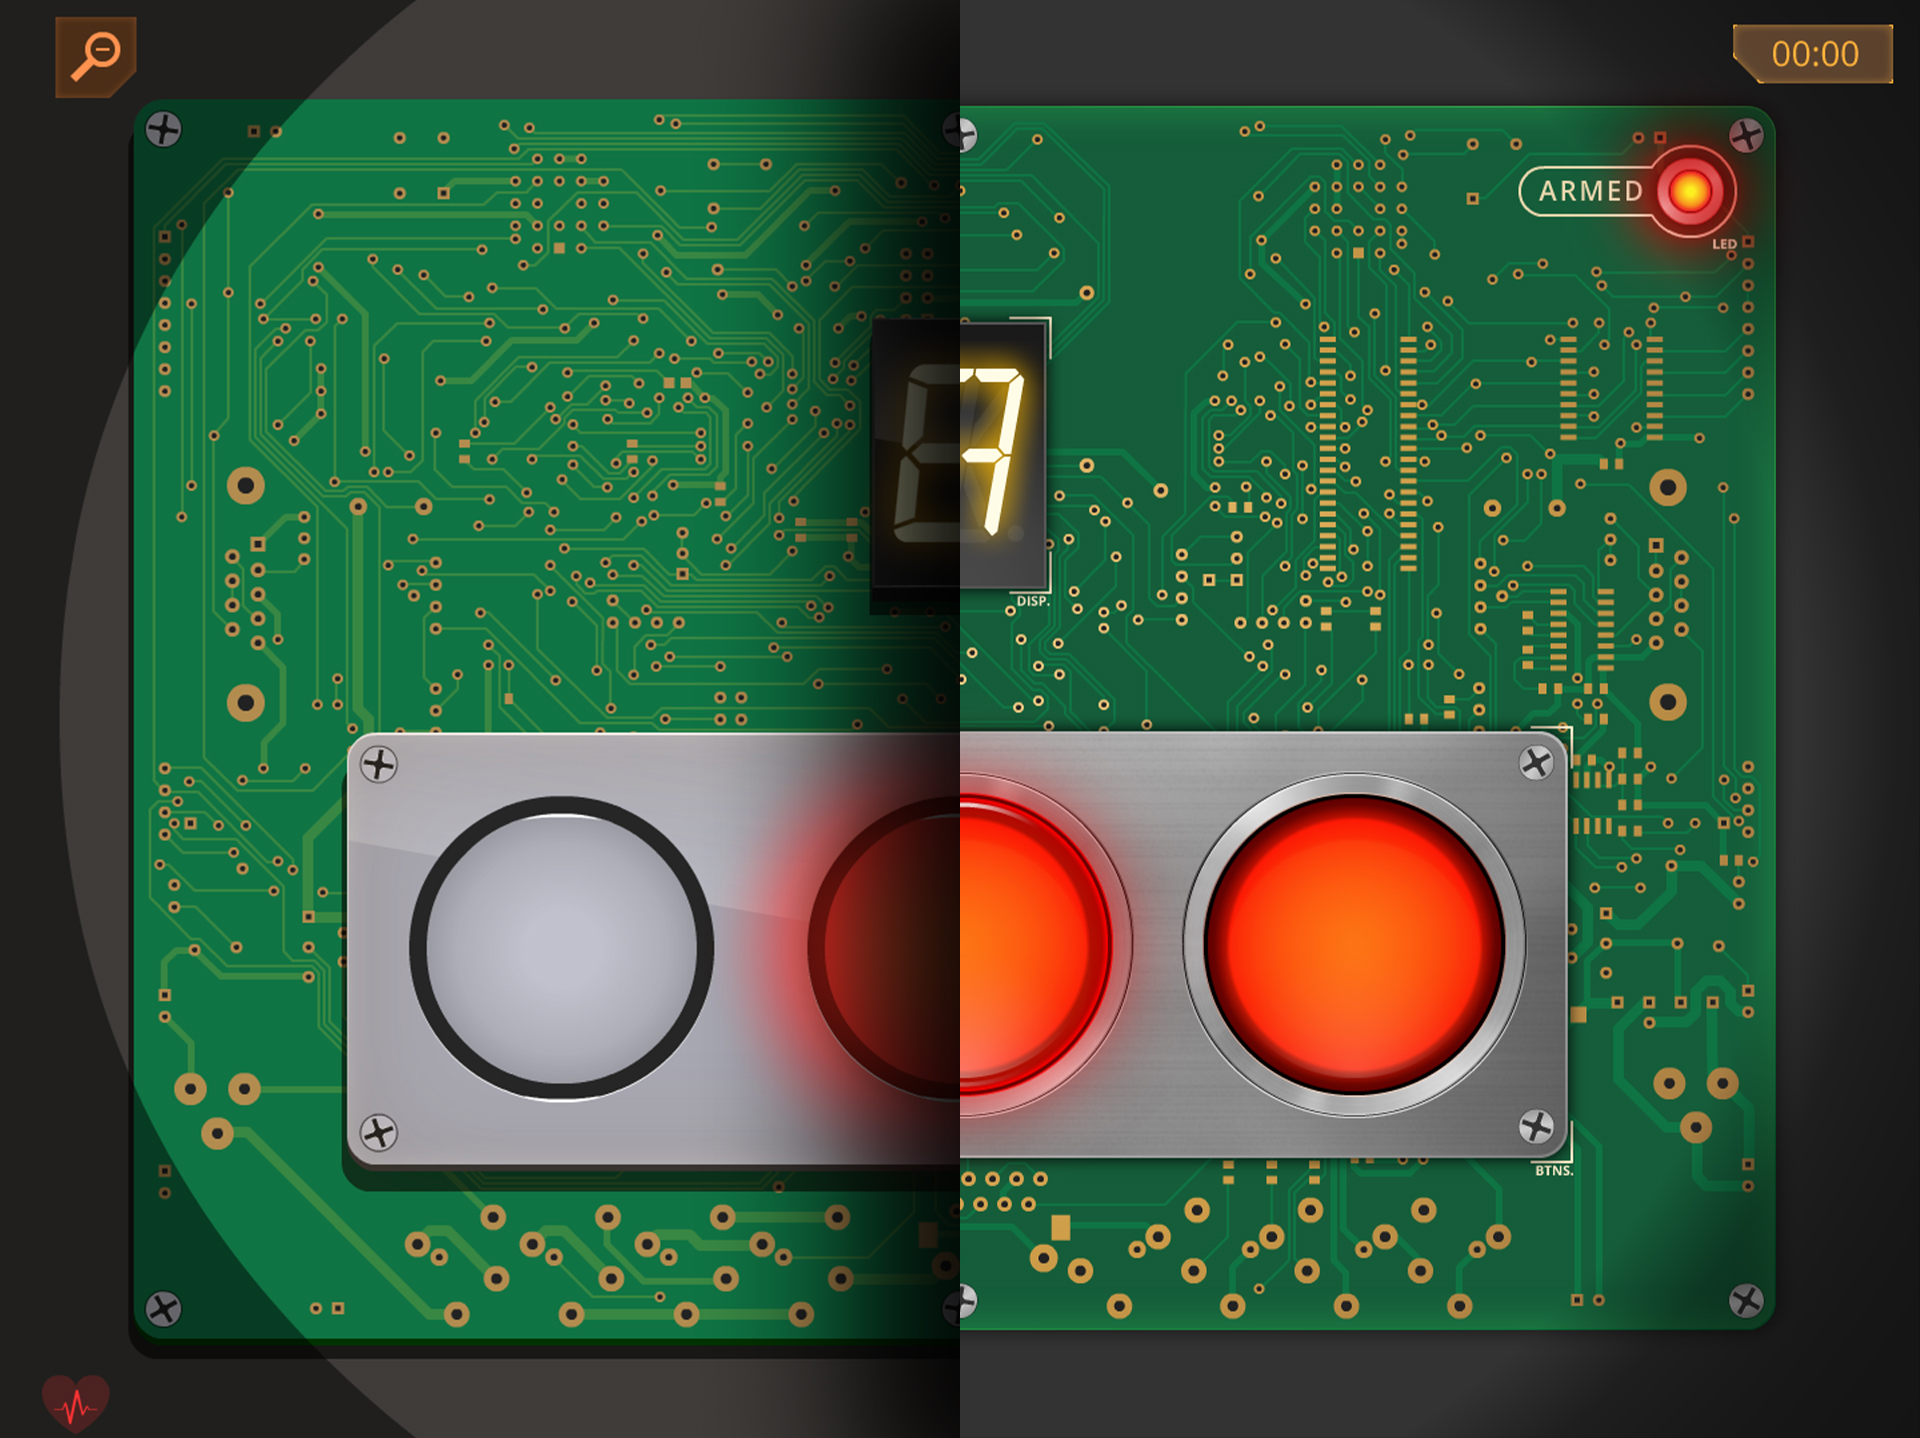 Them Bombs Three blinking buttons module then and now